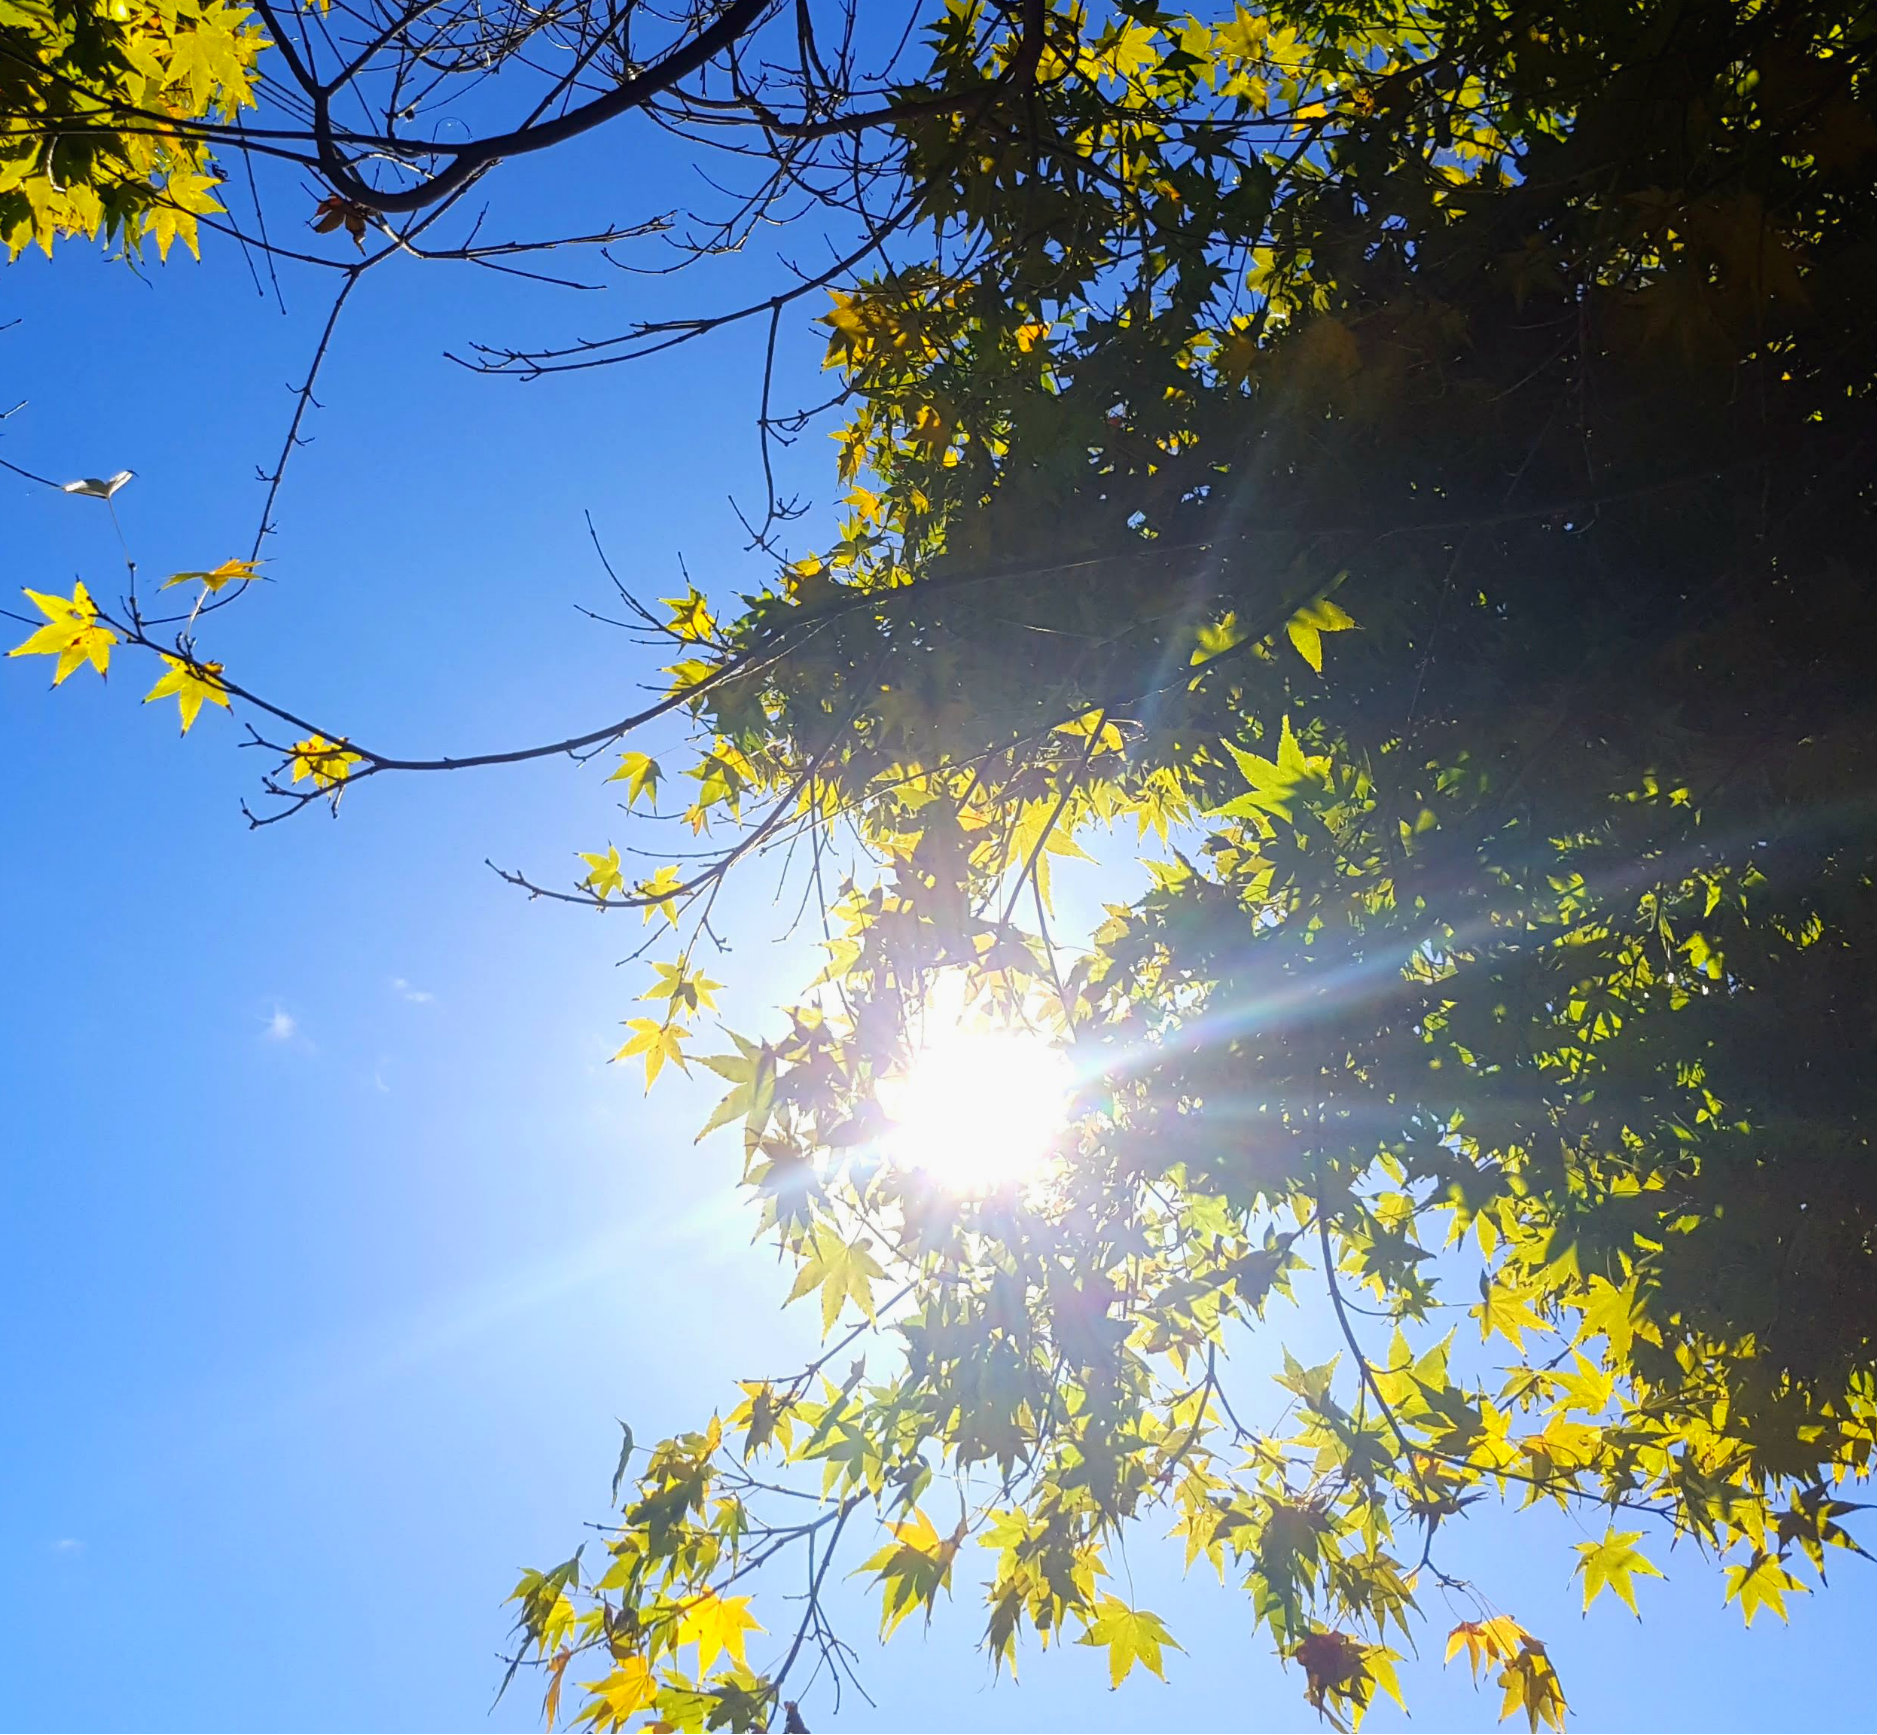 looking up at a blue sky and sun shining through bright green maple leaves